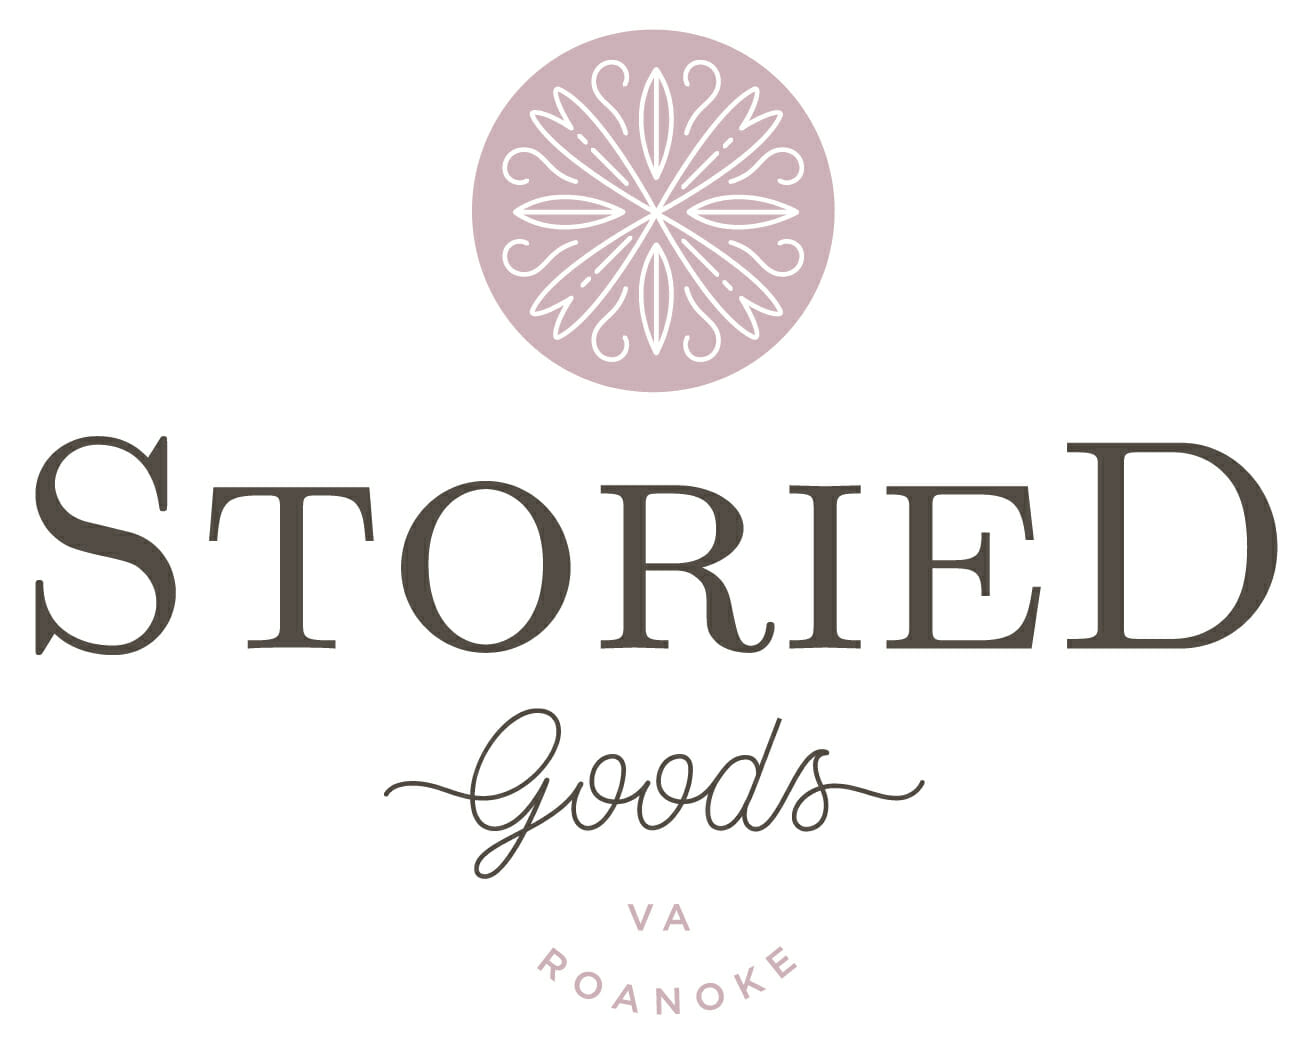 storied goods granola logo design